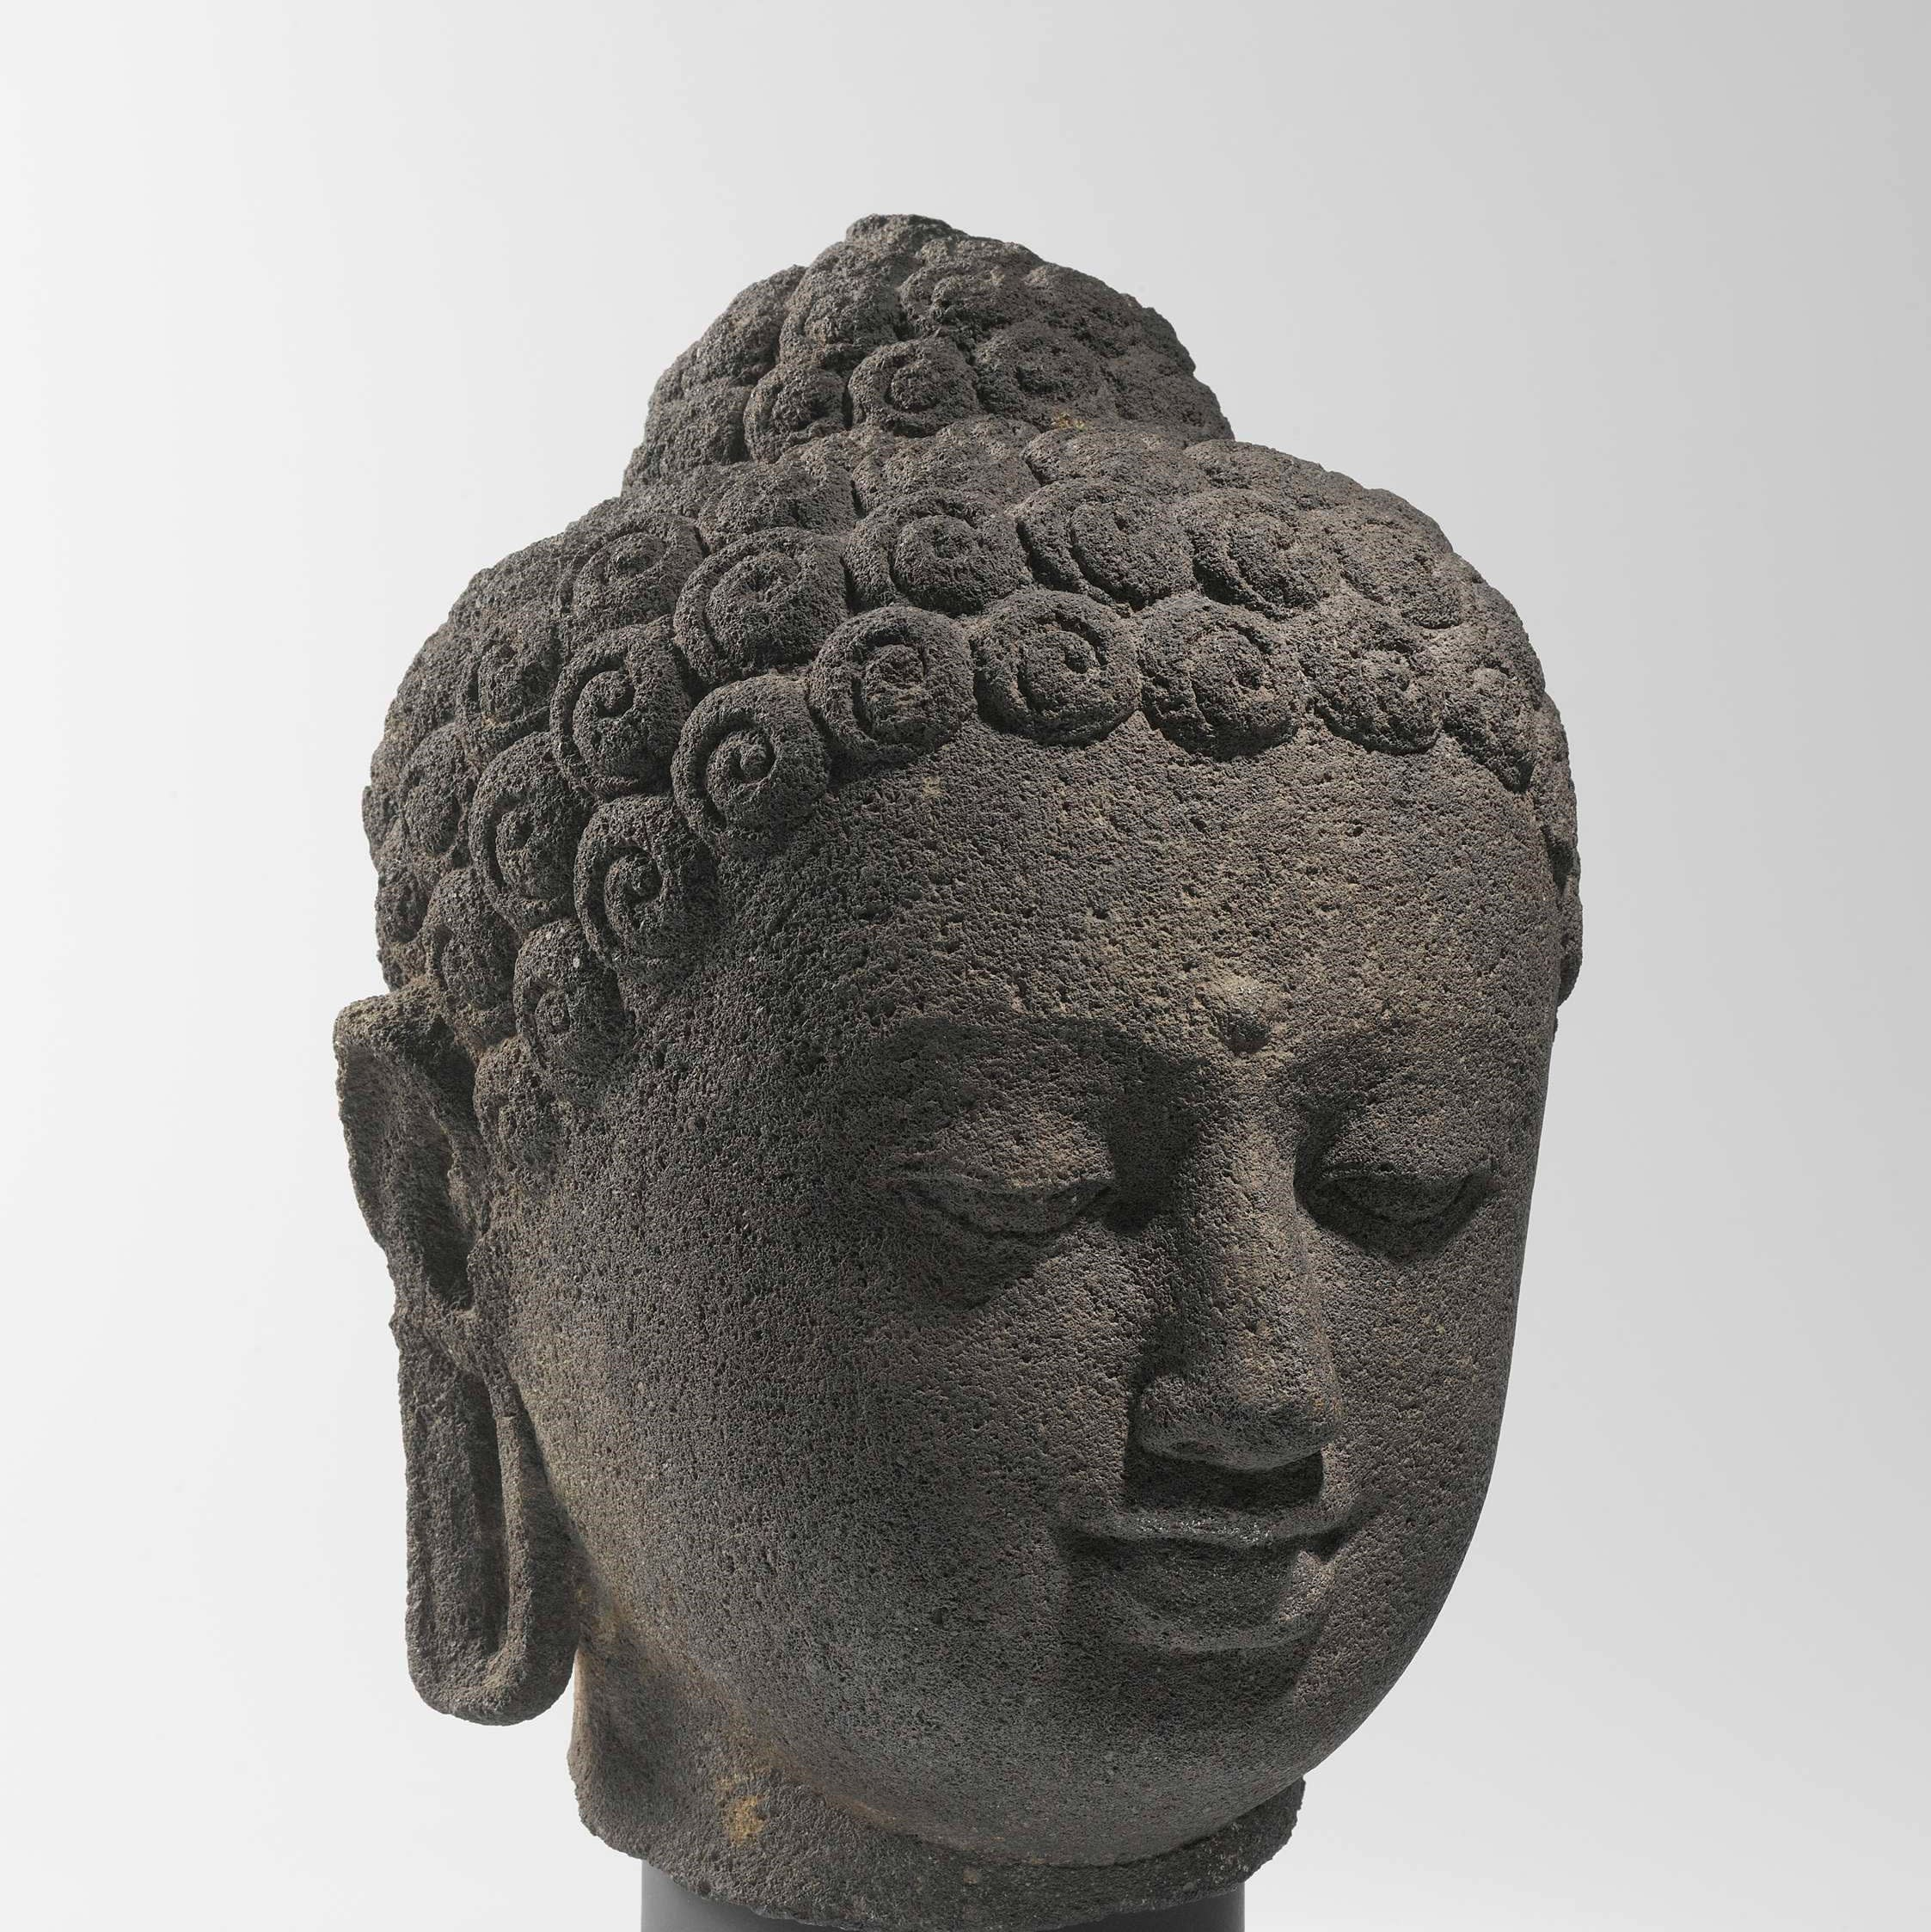 This andesite head of a Buddha is probably one of the 504 Buddha statues placed on and around the great Buddhist monument of Borobudur.